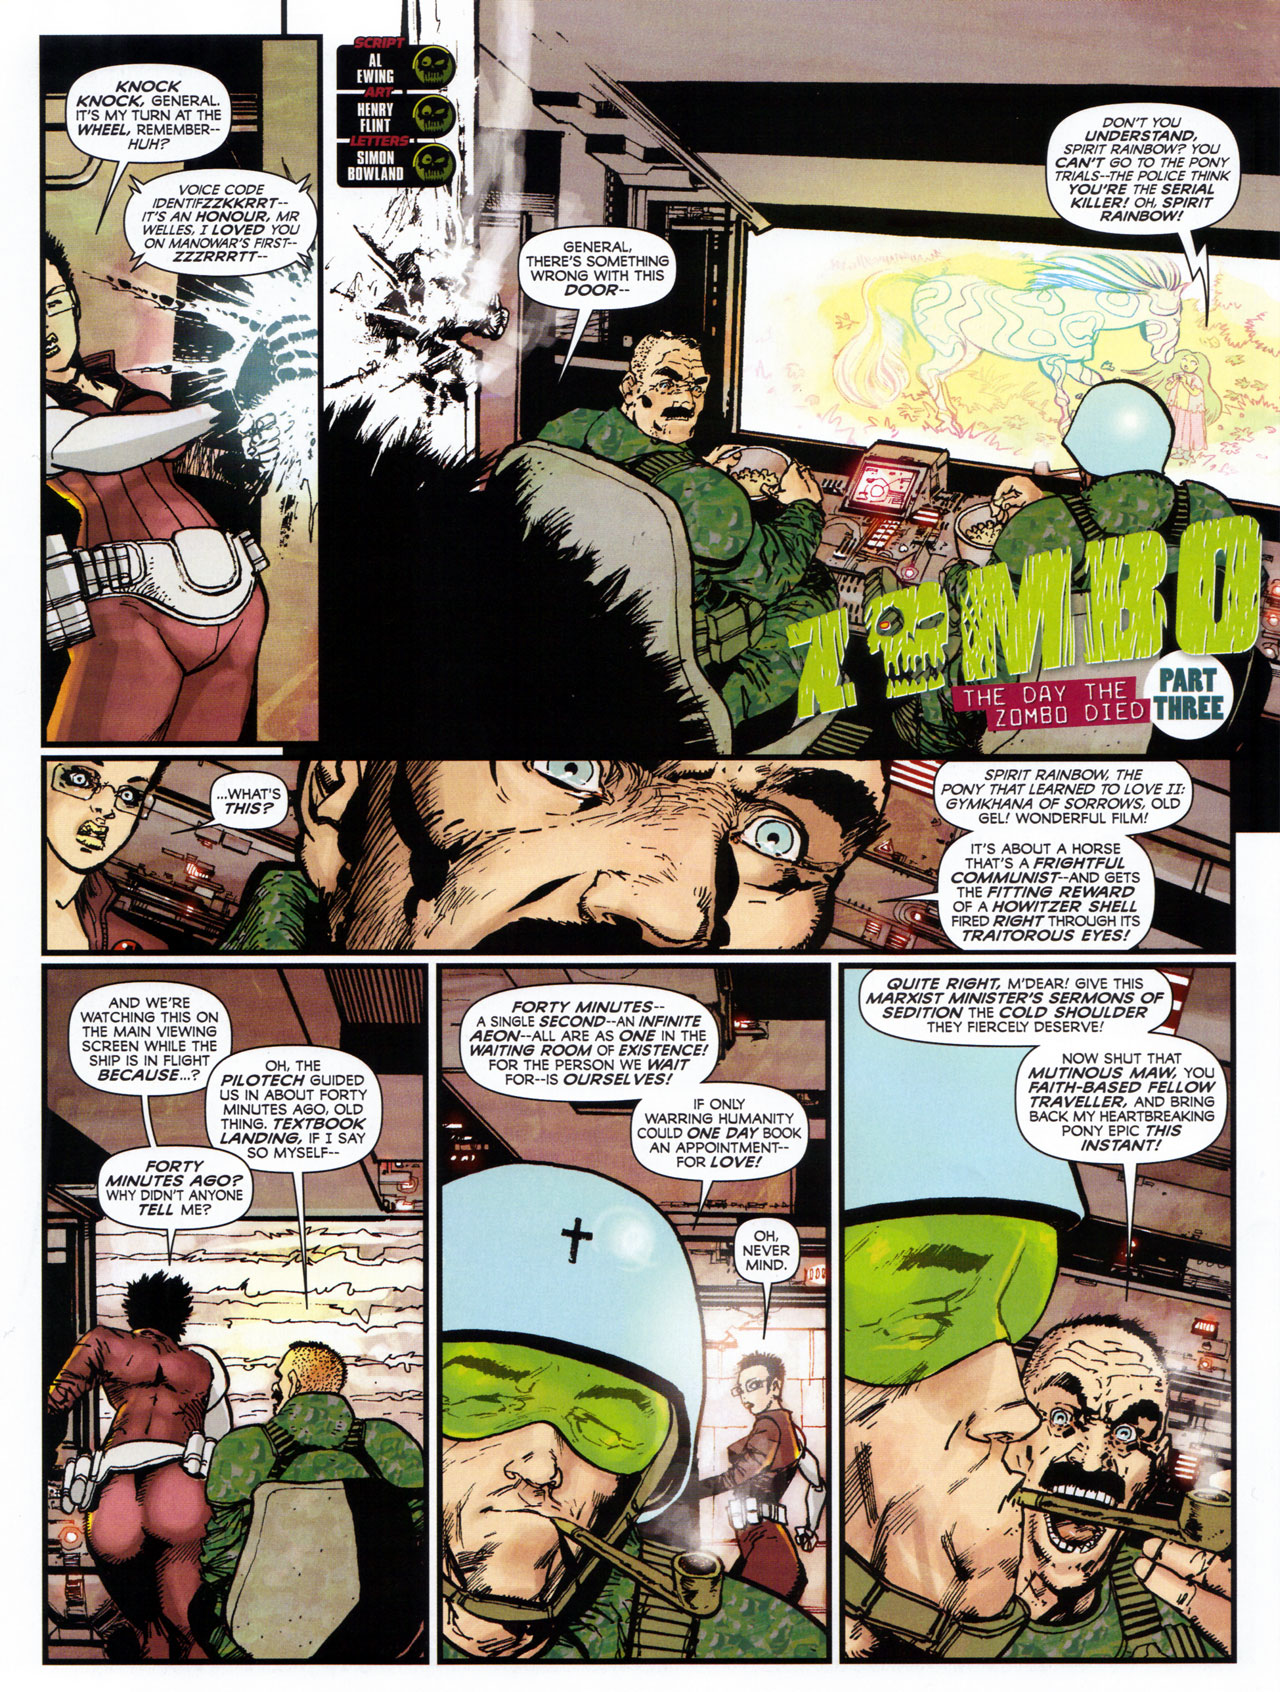 2000 AD 1746 Page 101